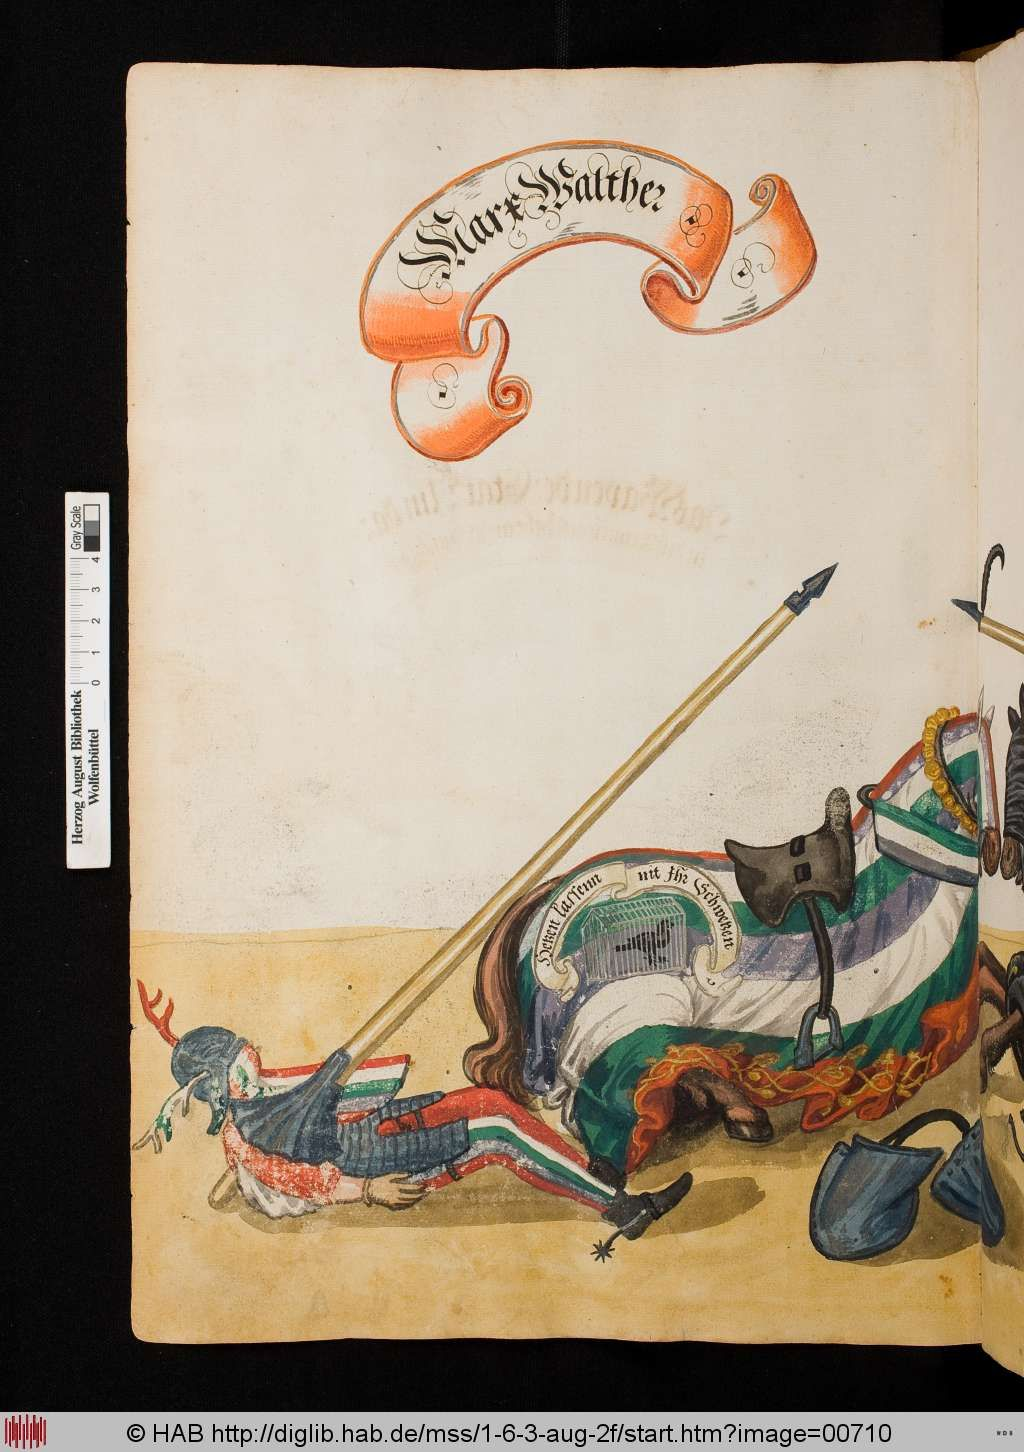 from a 16C Turnierbuch compiled for Jeremias Schemel of Augsburg = Wolfenbuettel, HAB cod. guelf 1.6.3 Aug 2o -- via the HAB website.image 710. The fallen jouster is Marx Walther again